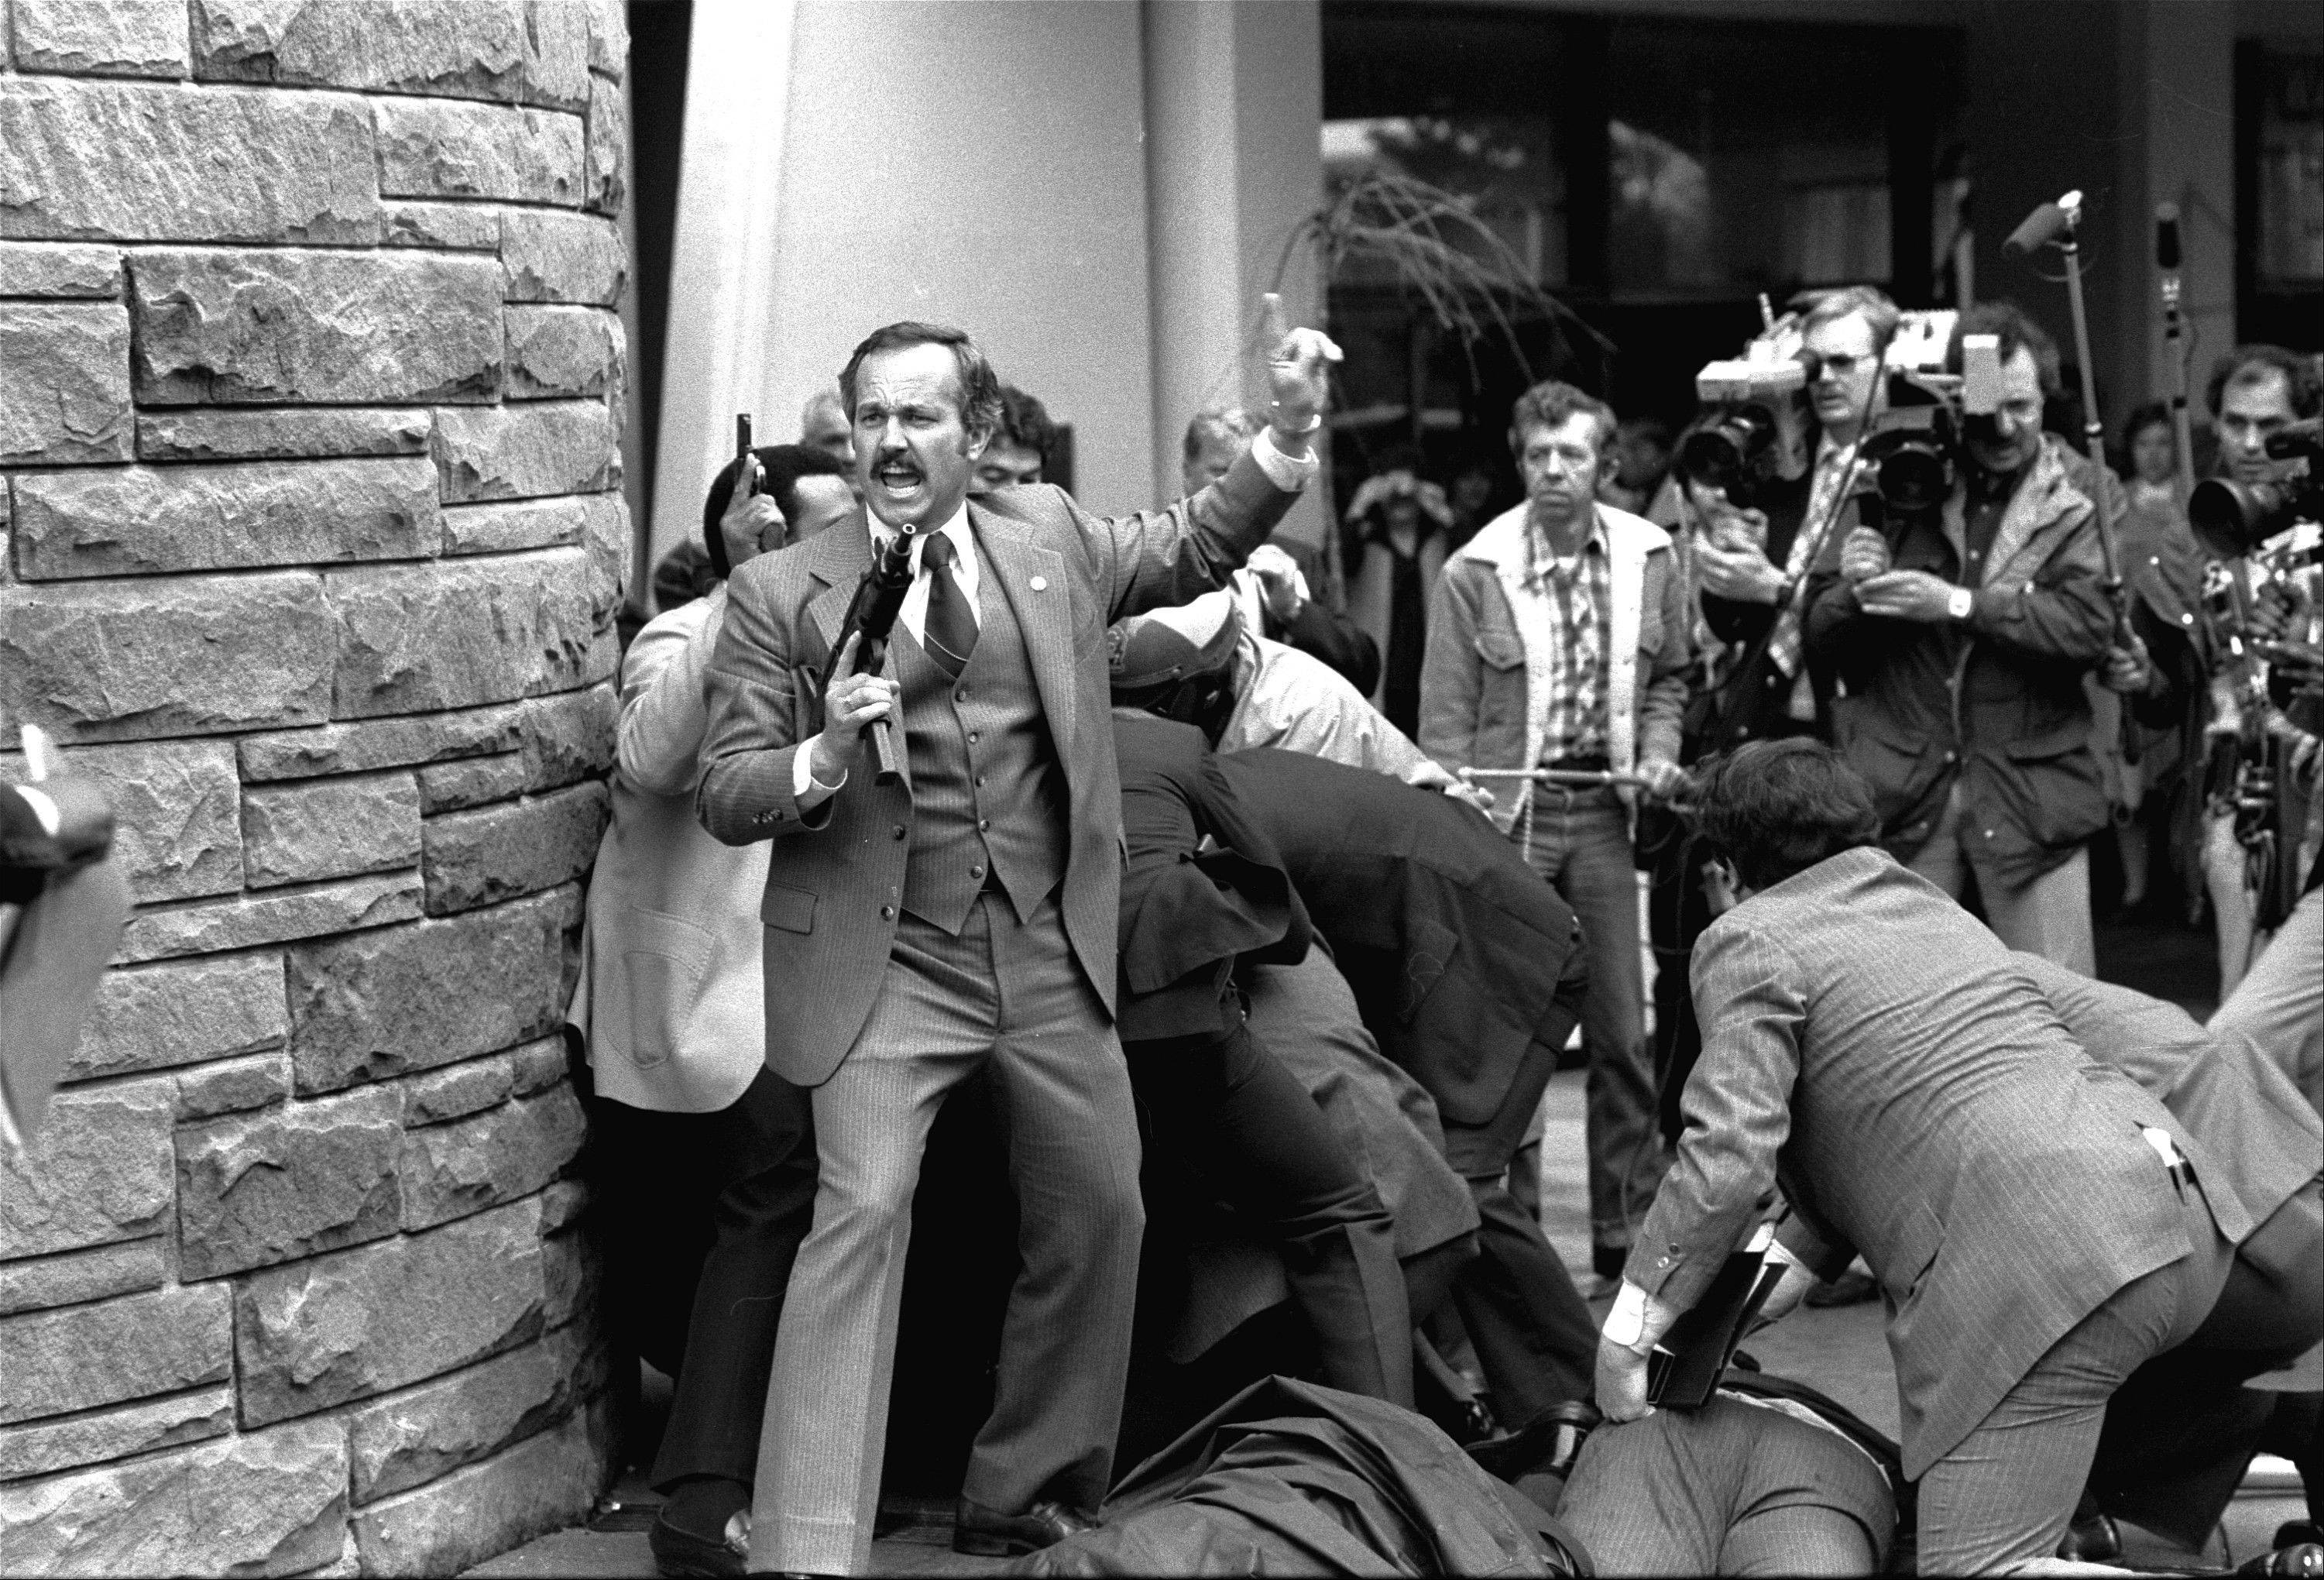 A Secret Service agent, automatic weapon drawn, yells orders after shots were fired at President Ronald Reagan outside a hotel in Washington.